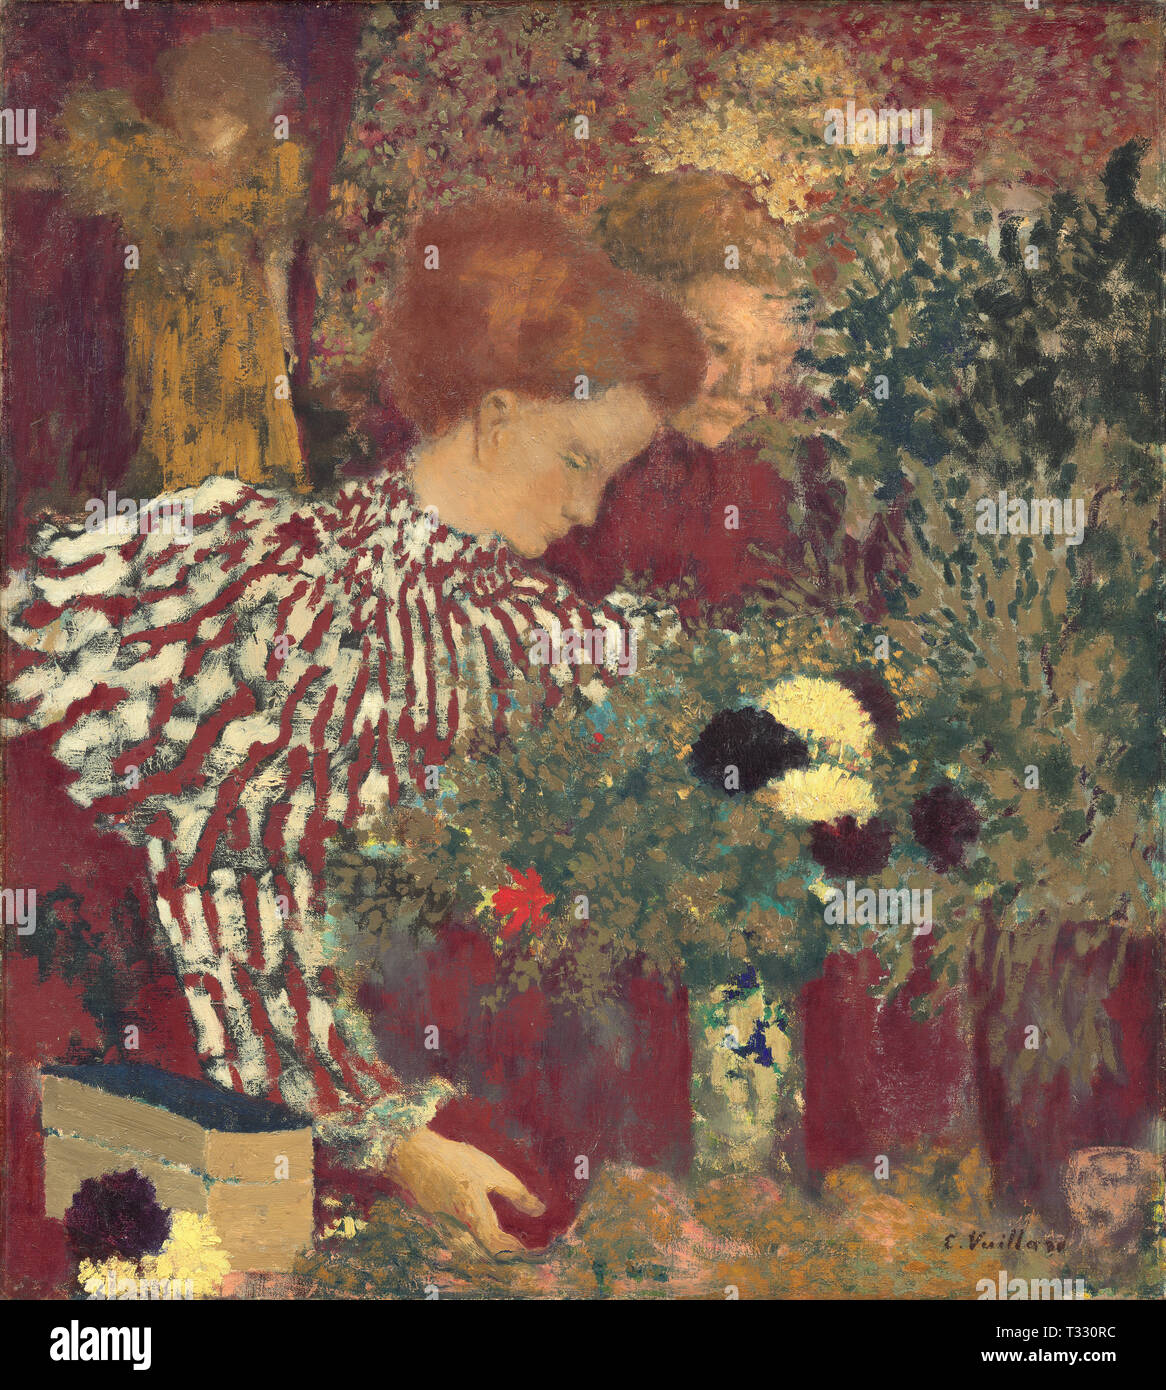 Edouard Vuillard (French, 1868 - 1940), Woman in a Striped Dress, 1895, oil on canvas - Stock Image